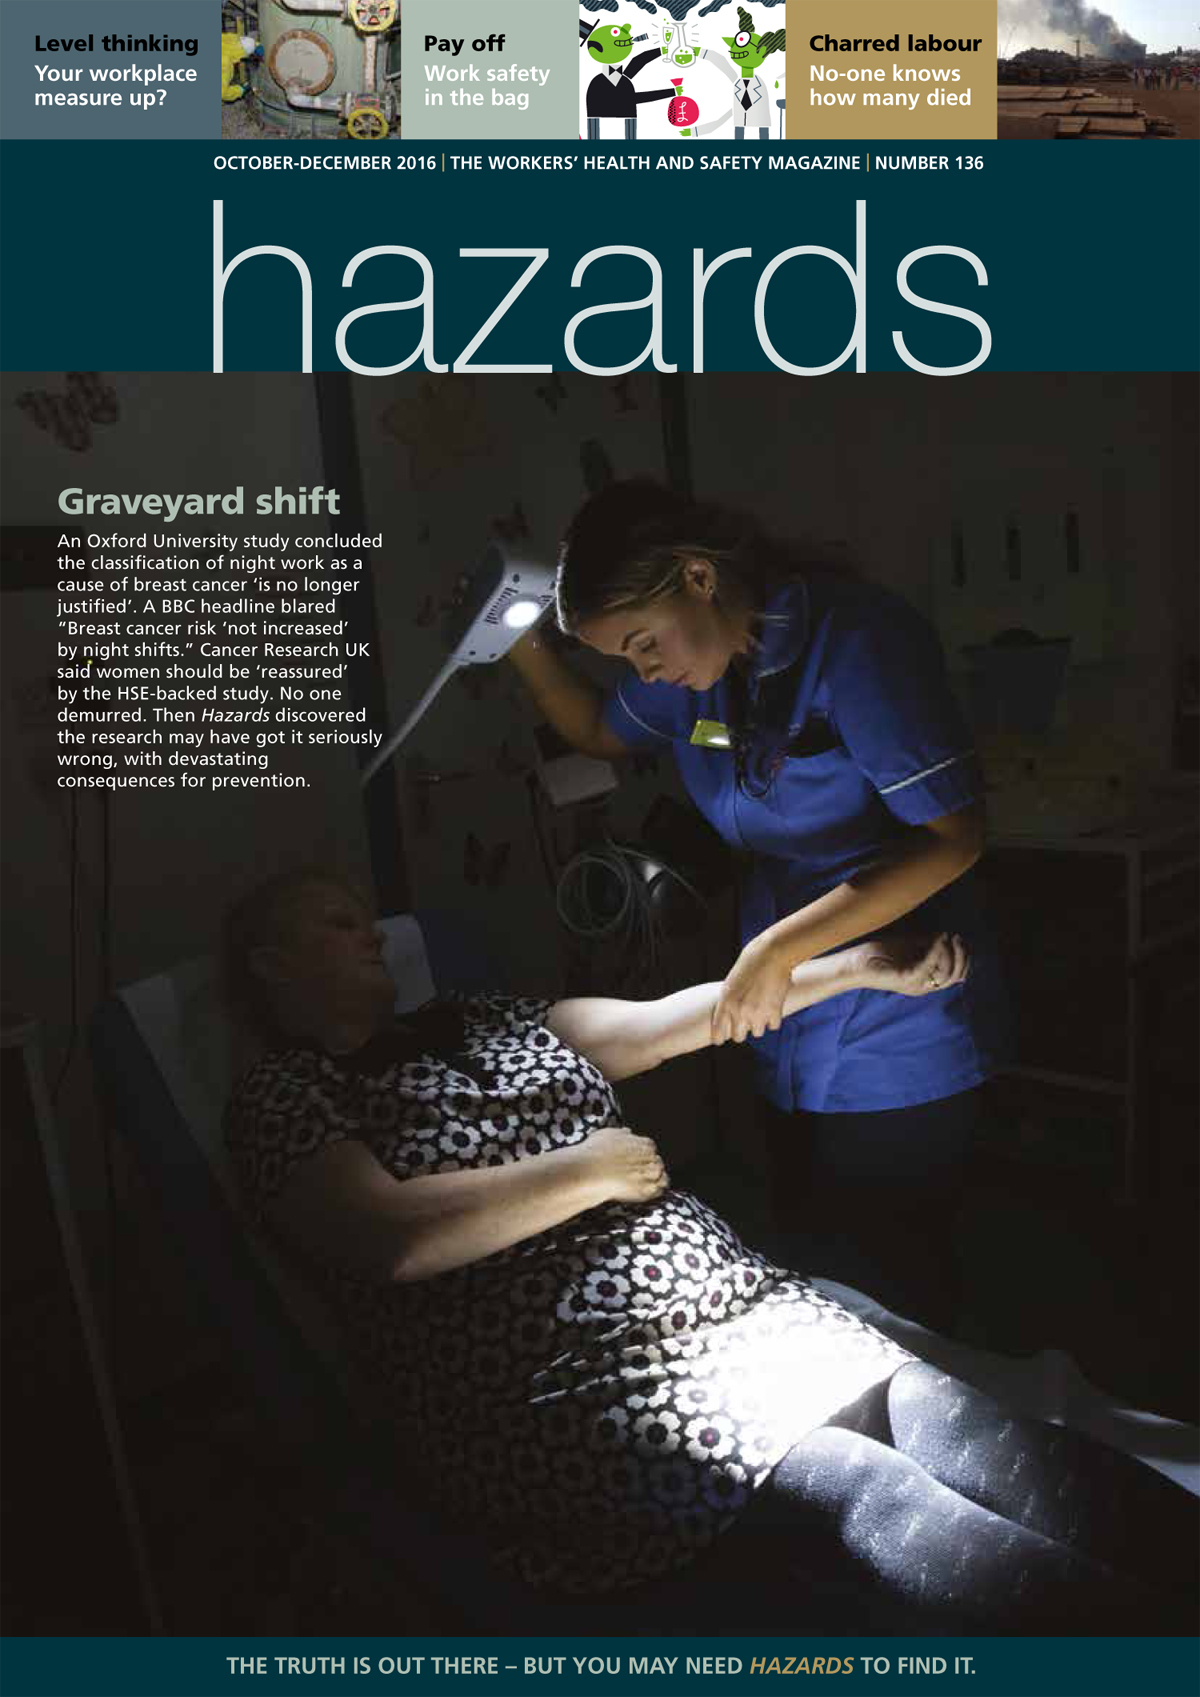 Graveyard shift: Cancer all-clear for night work based on